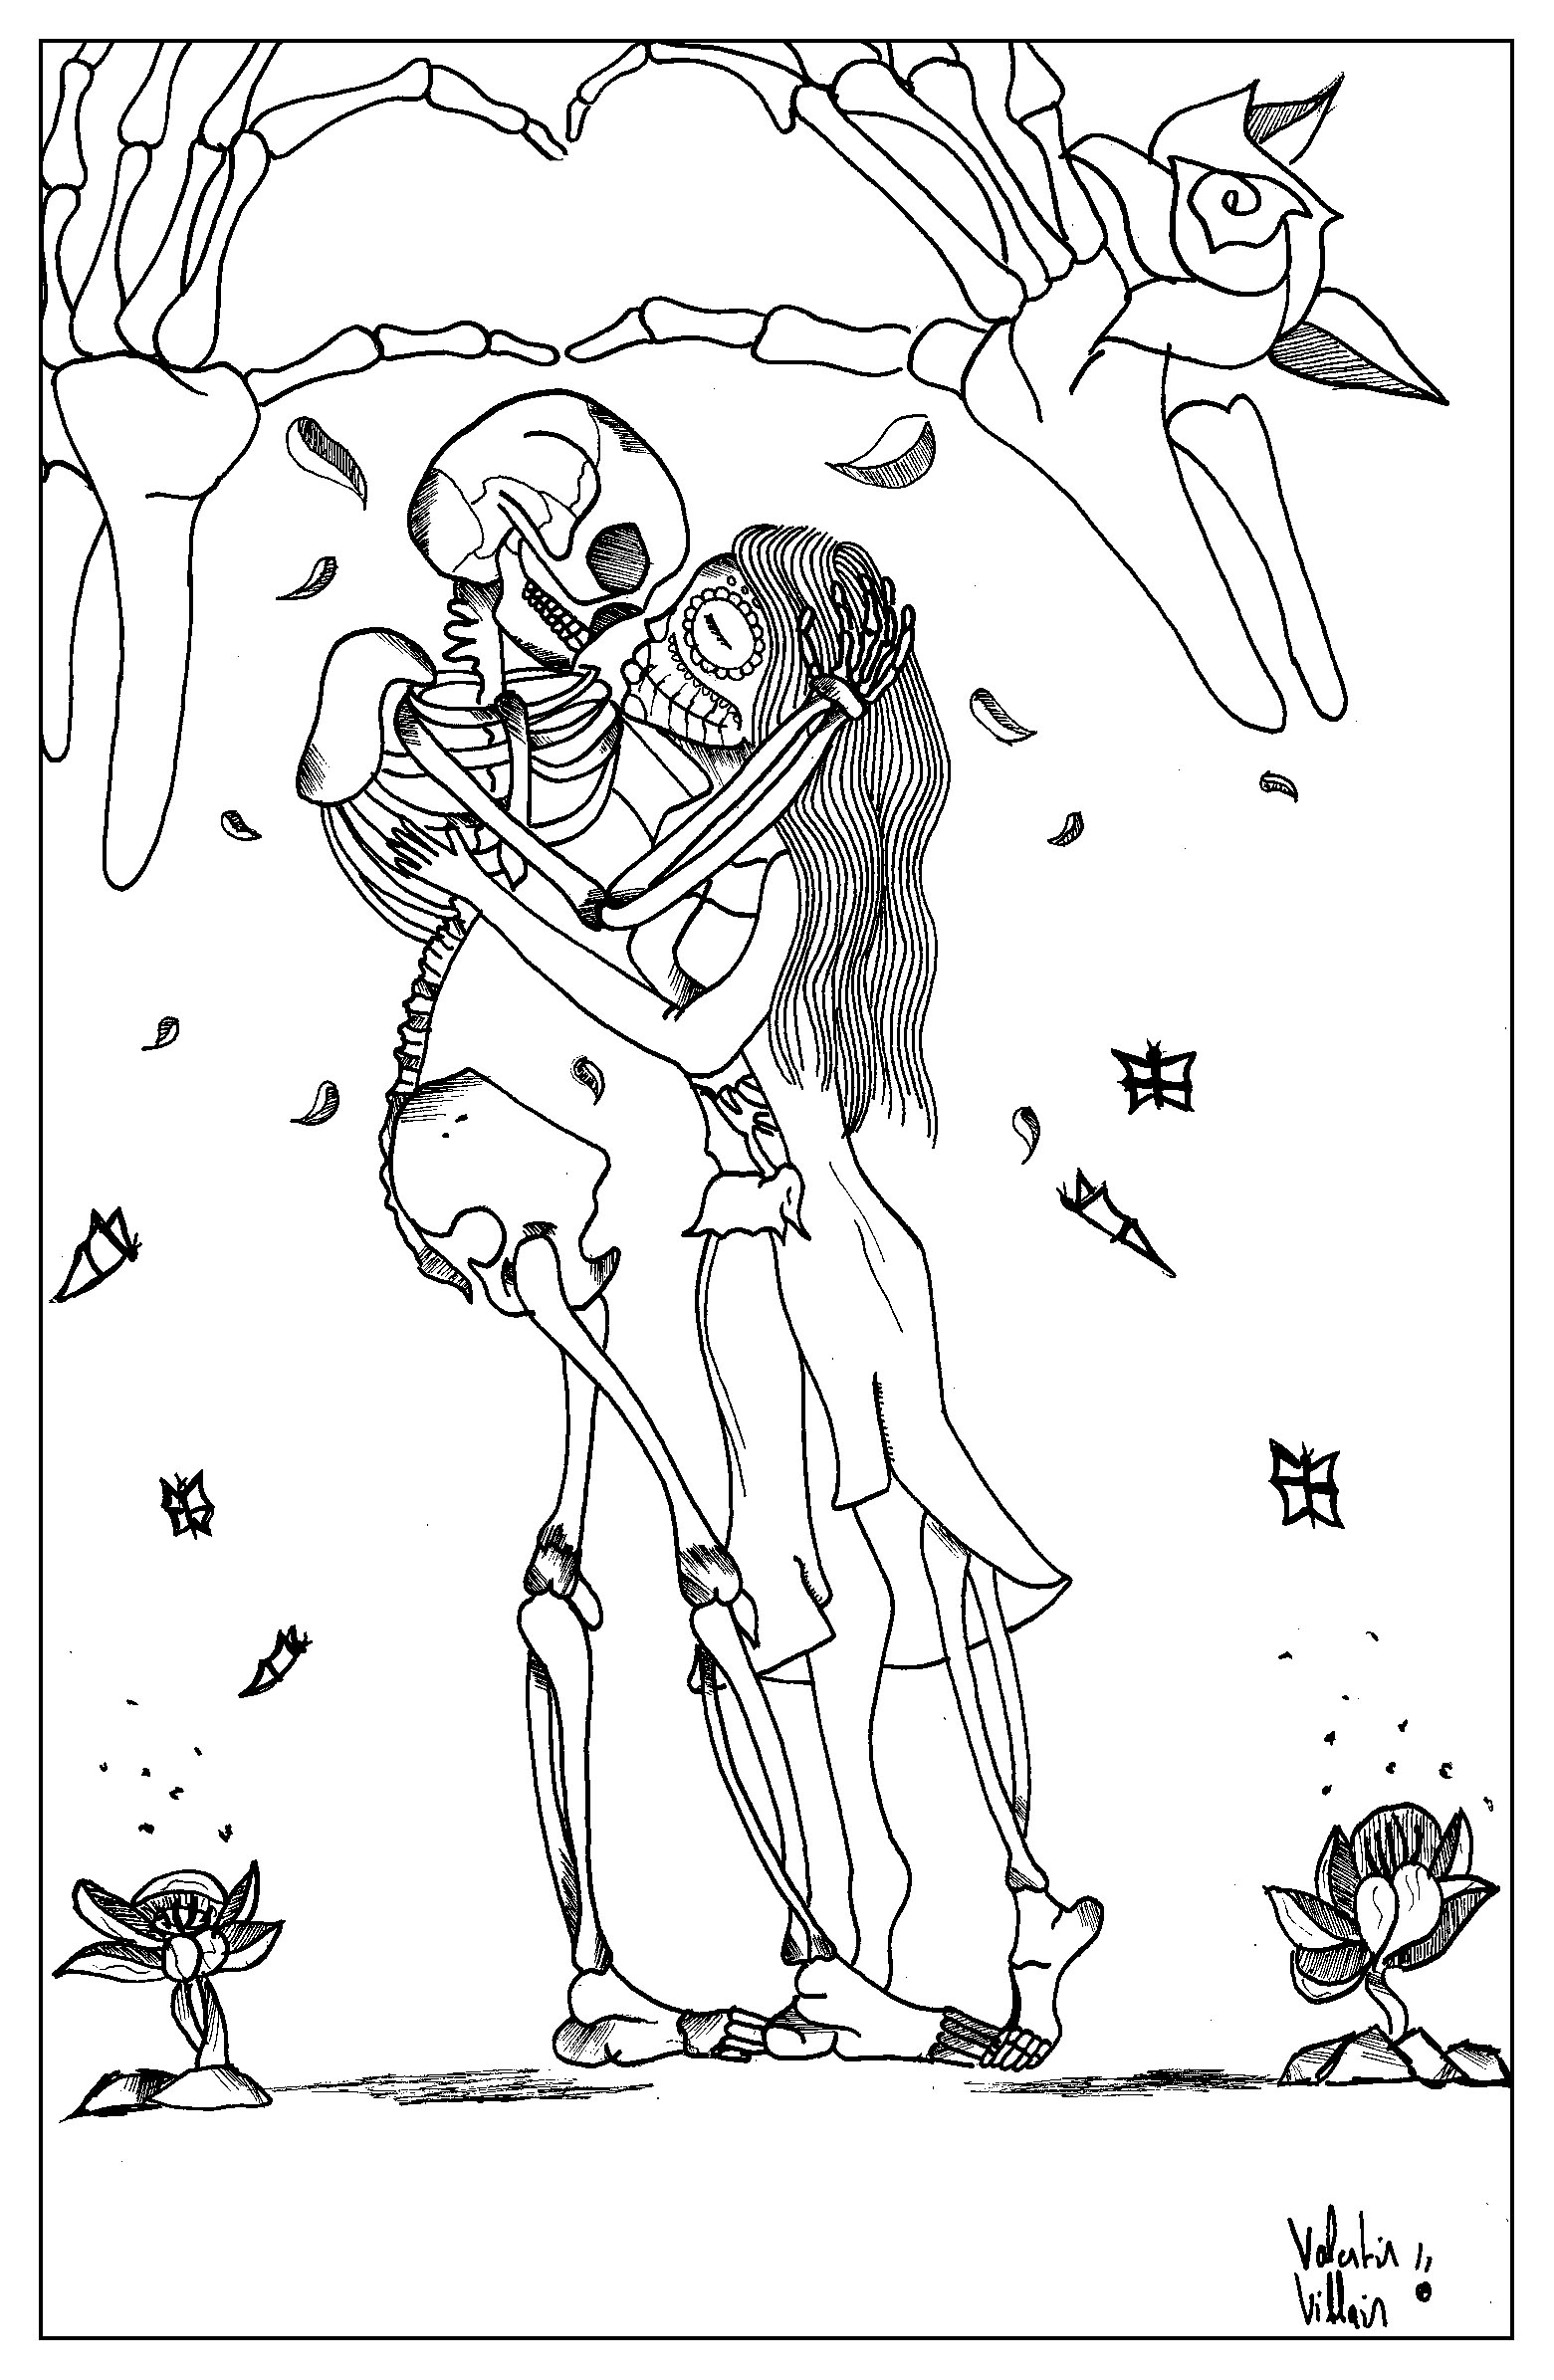 a coloring page for valentines day with a very particular style